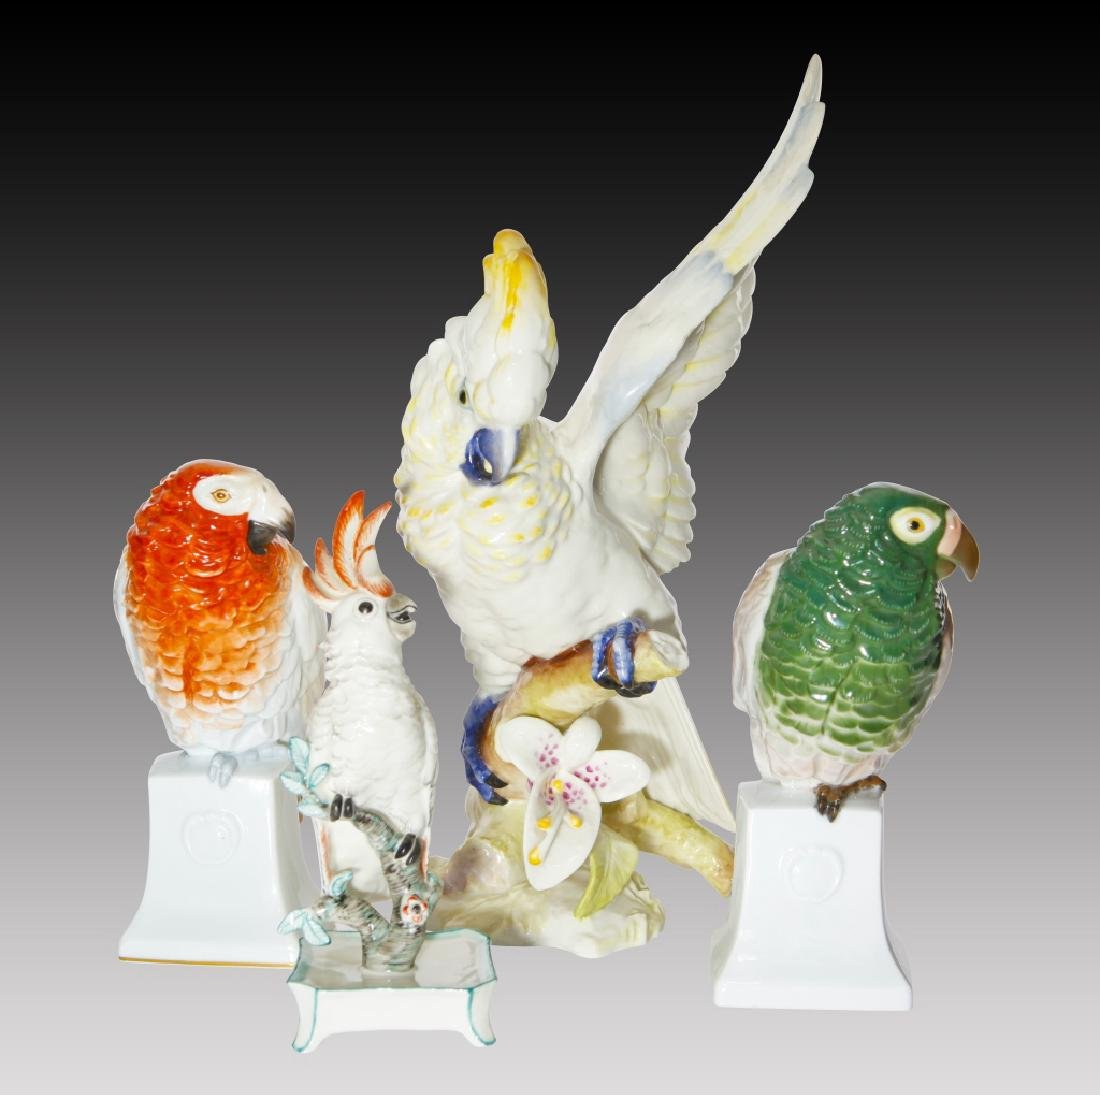 Grouping of 4 Colorful Parrots and Cockatoos